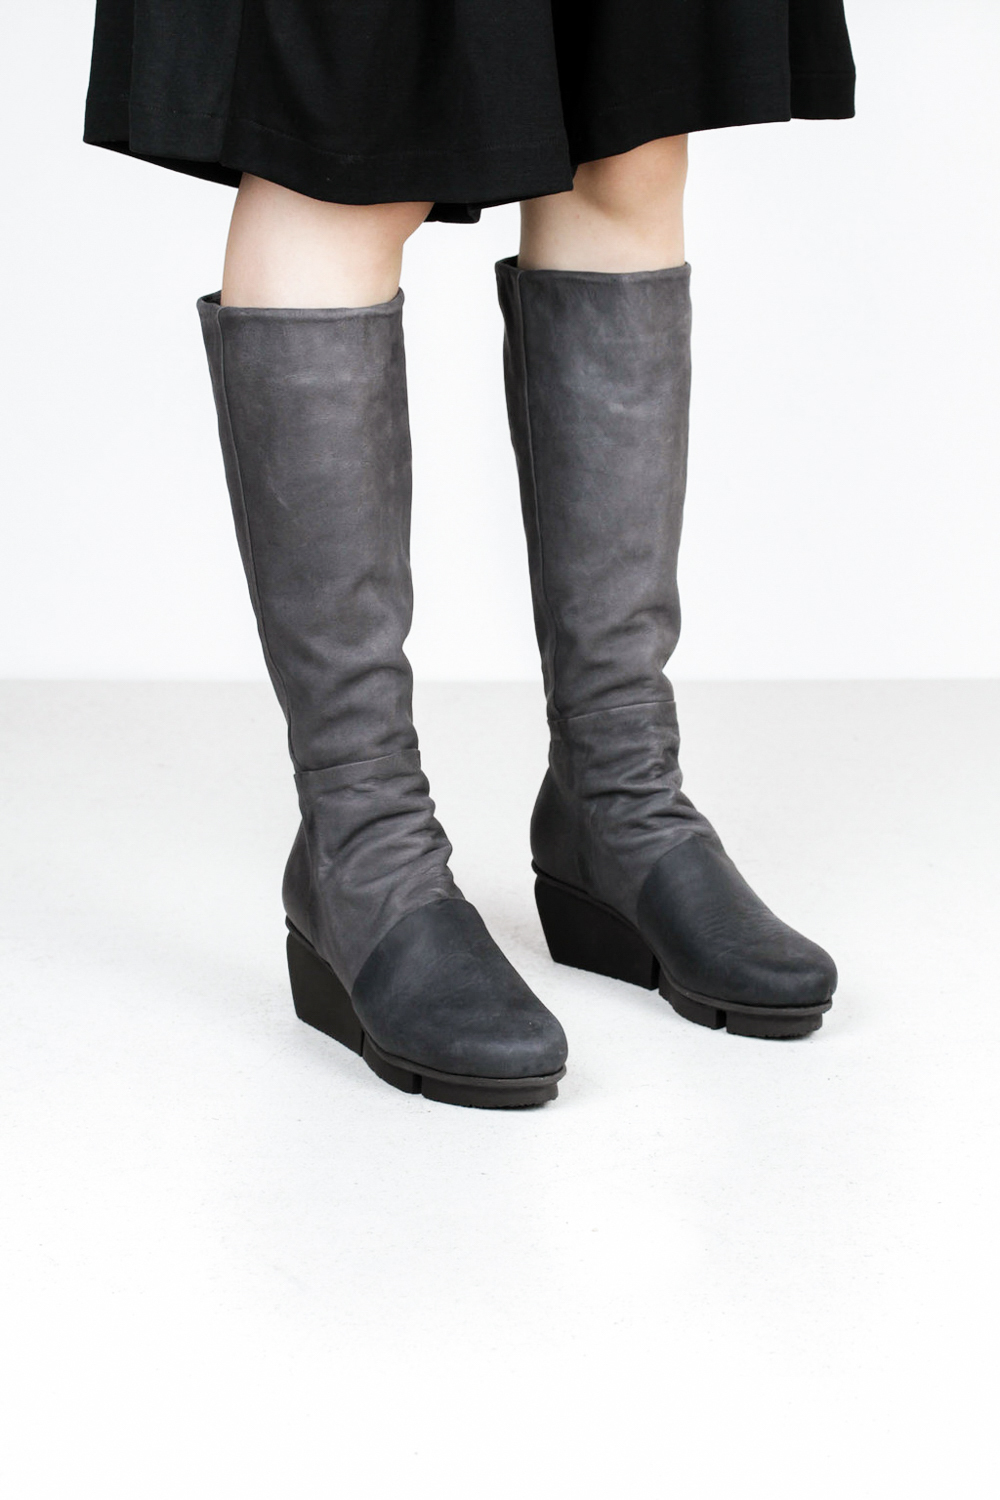 Trippen melt f pul black tiz gry leather boots 2